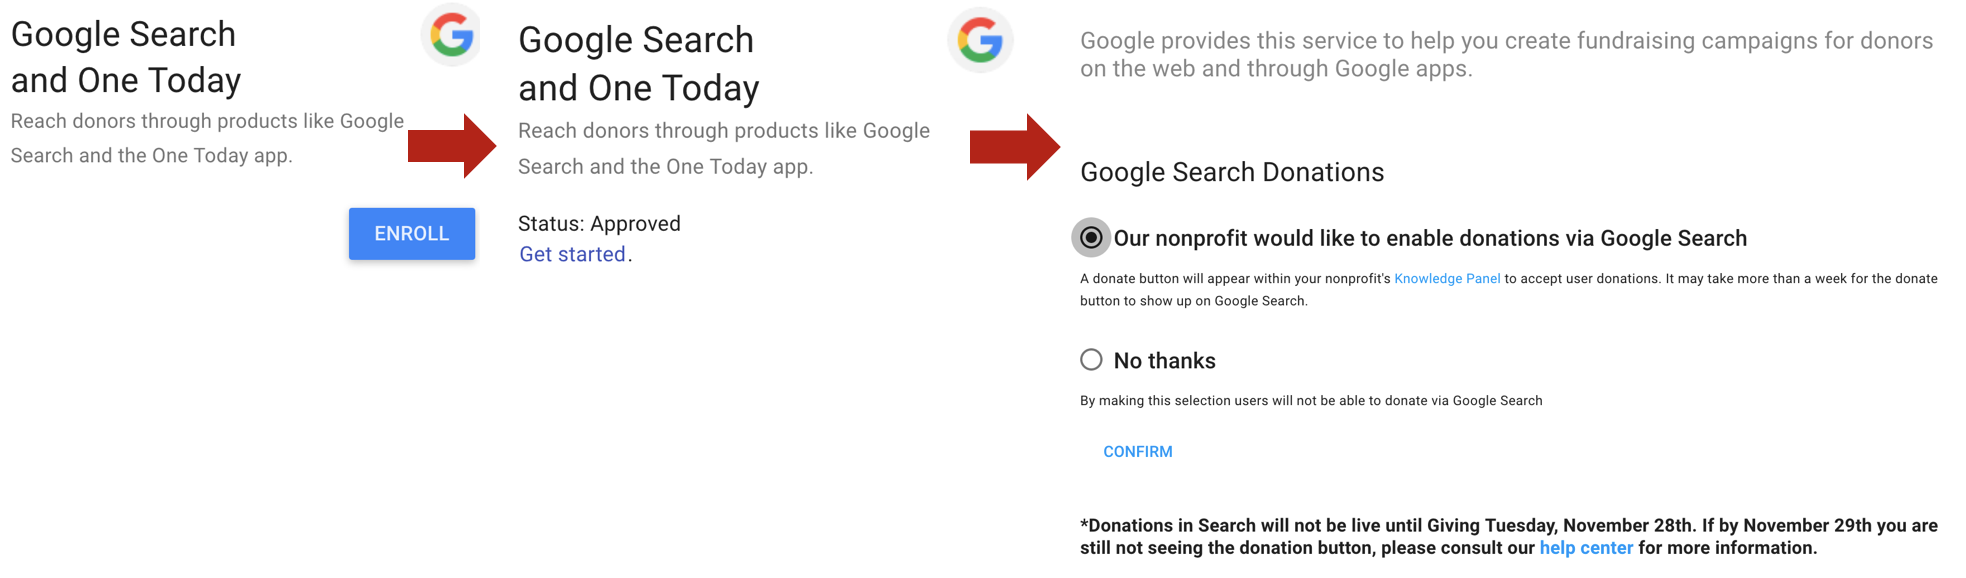 How To Get a Google Search Engine Results Page Donate Button | CenterTable Digital Agency